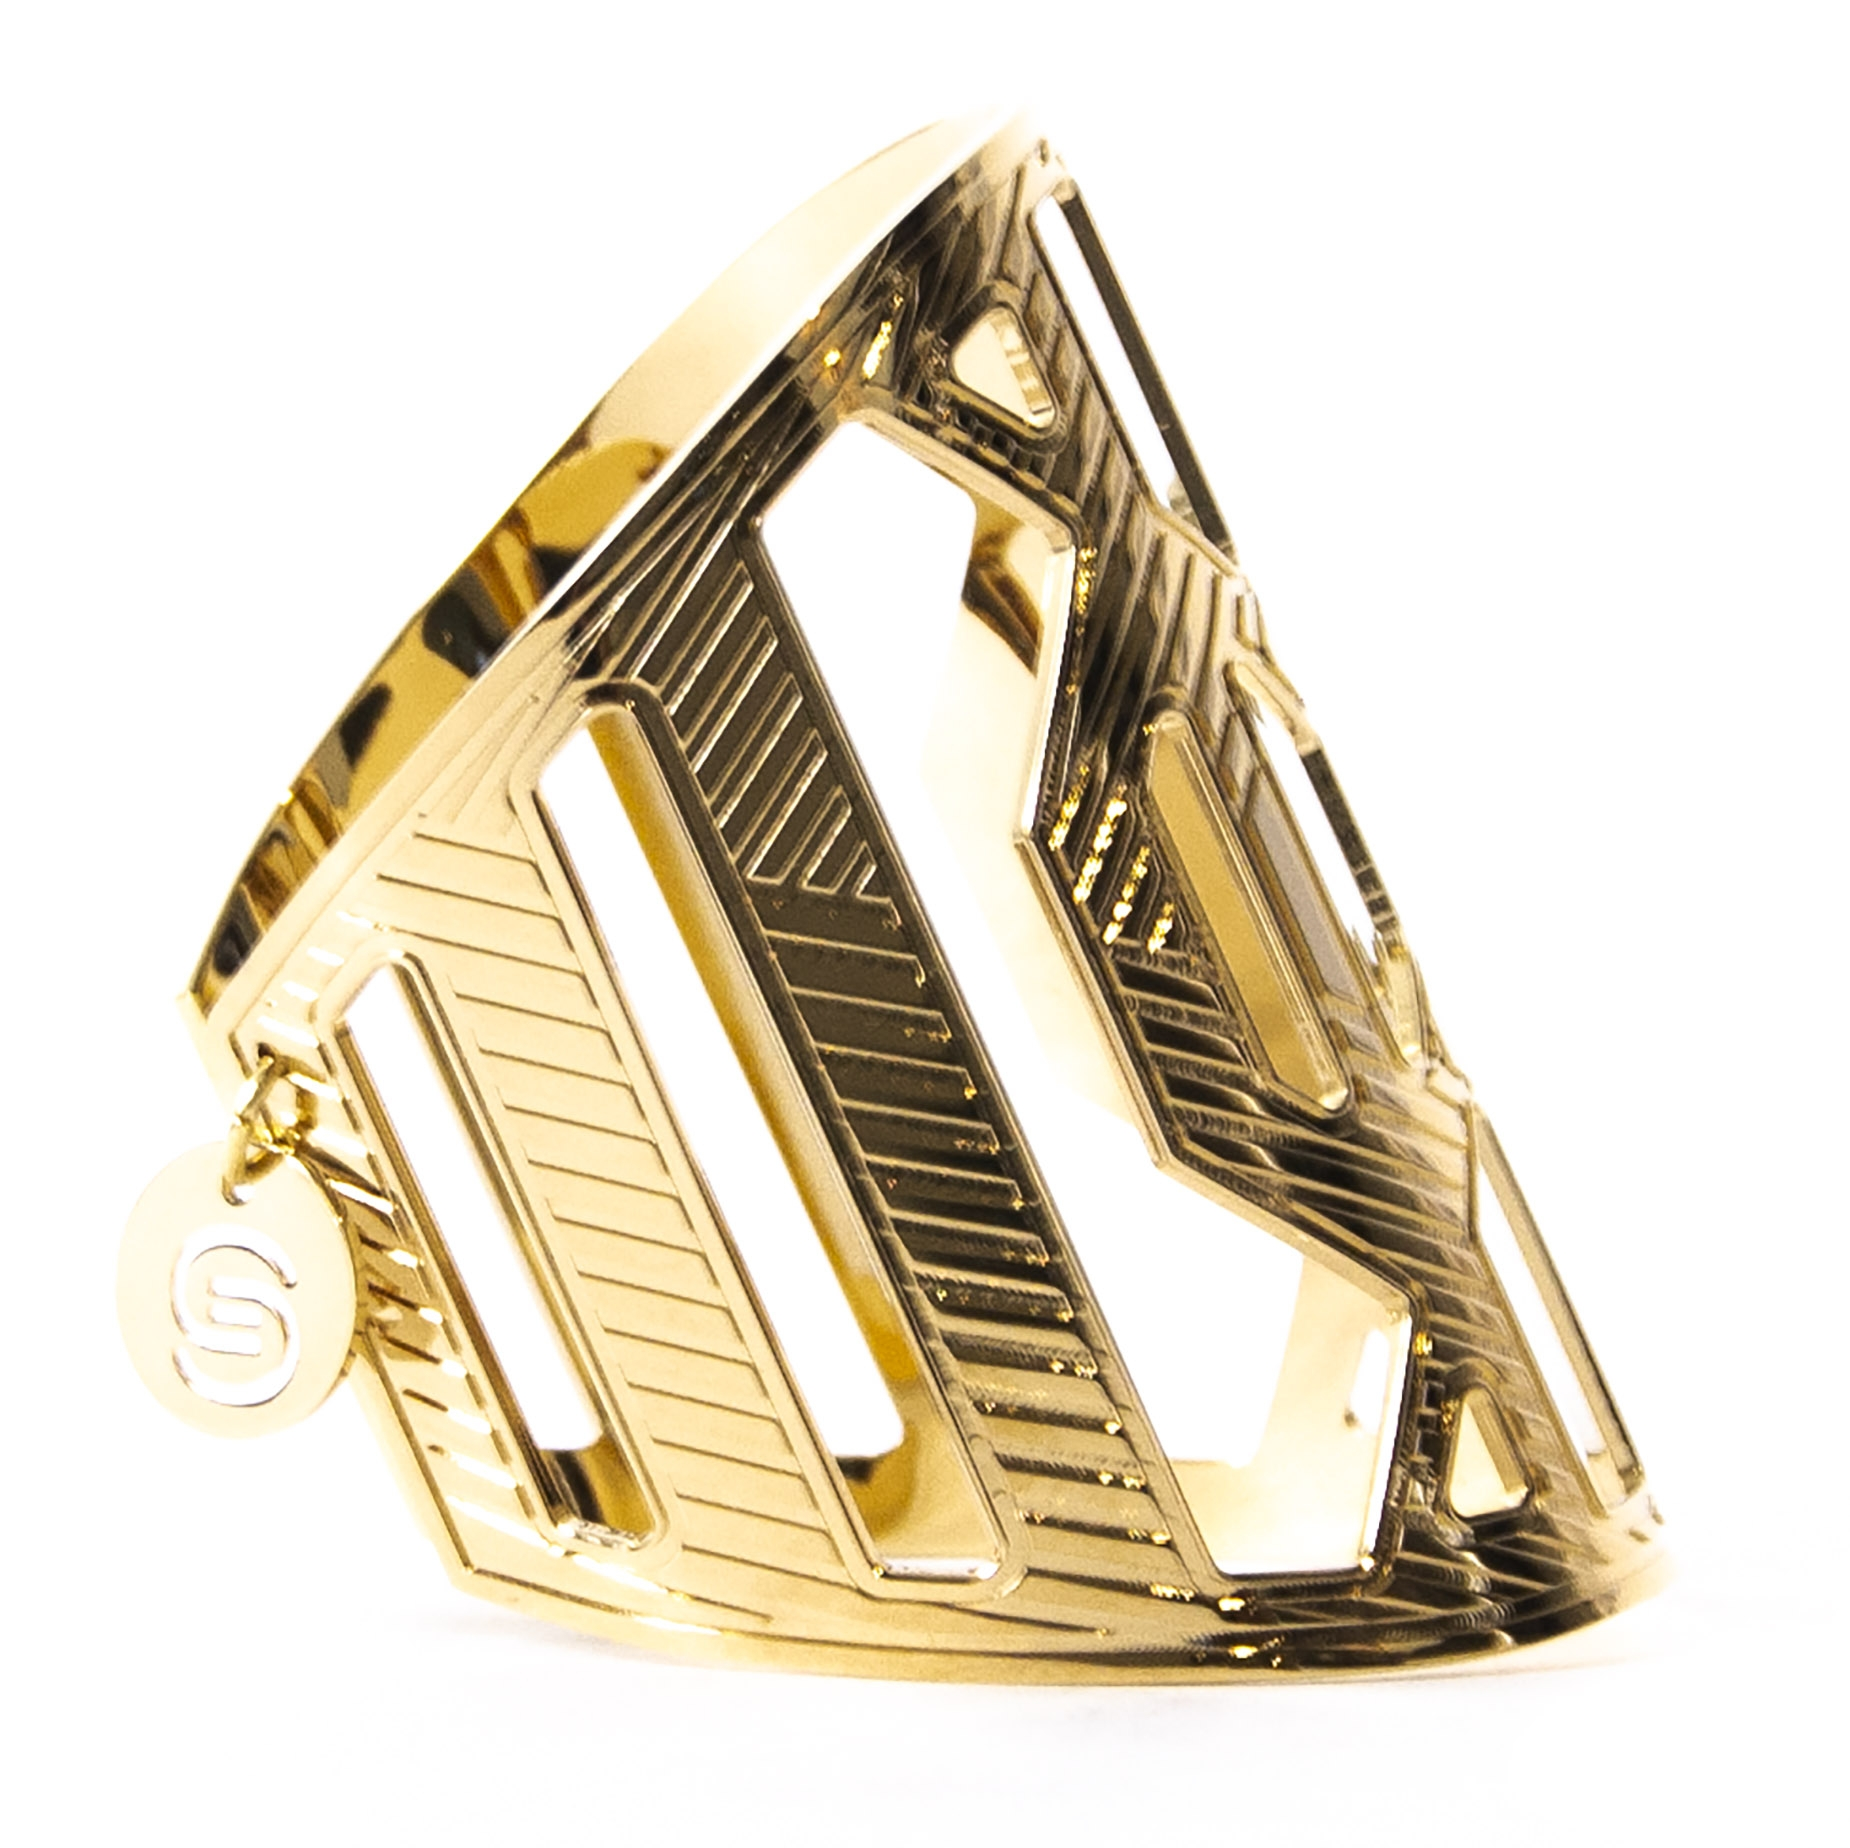 Authentique seconde main vintage Elie Saab Gold Cutout Bangle achète en ligne webshop LabelLOV